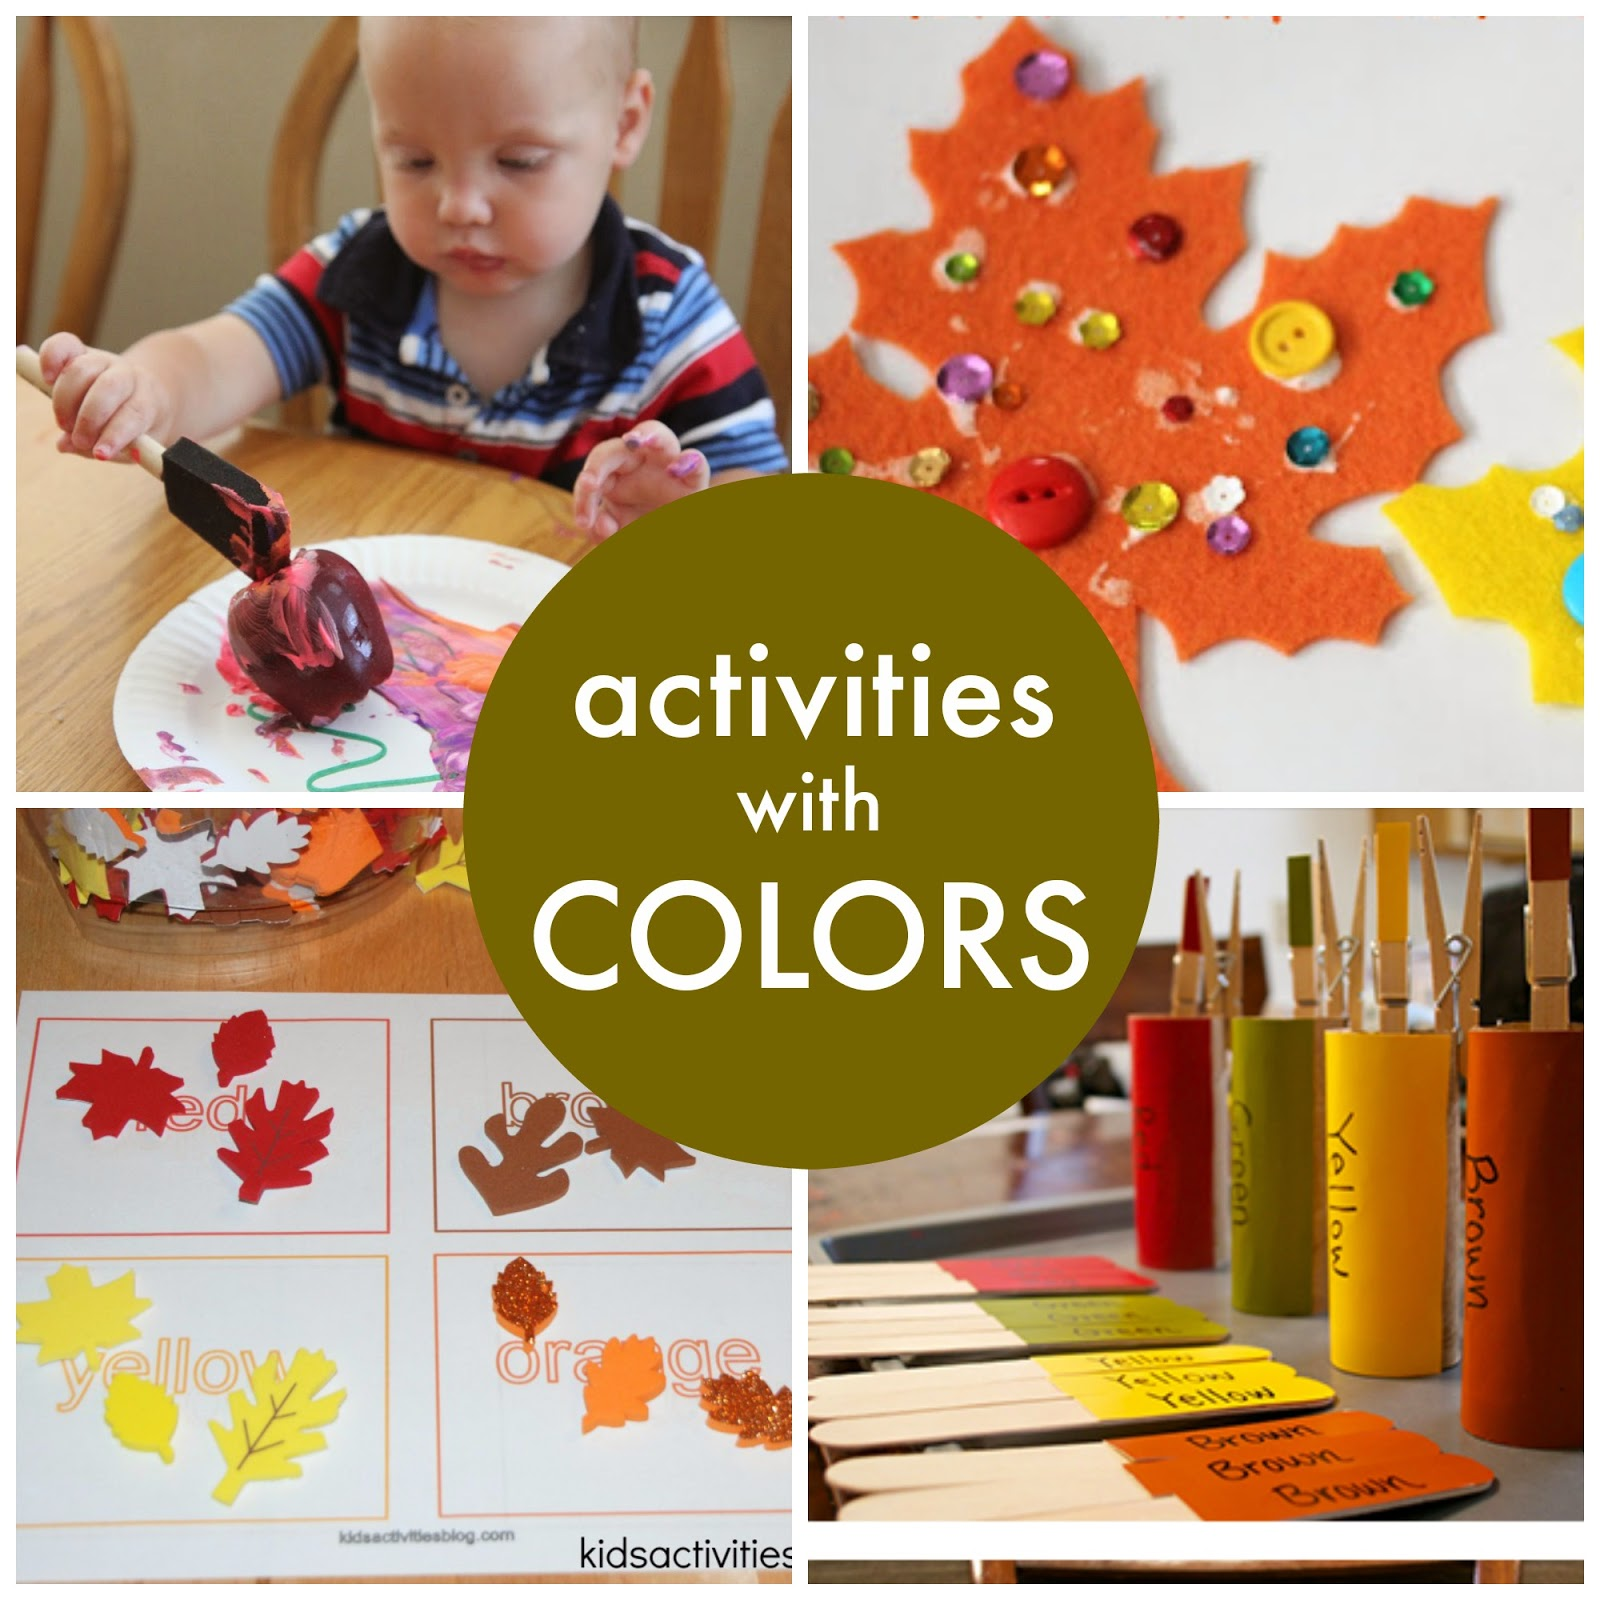 Fall colors activities for toddlers - Sparkly Fall Leaves